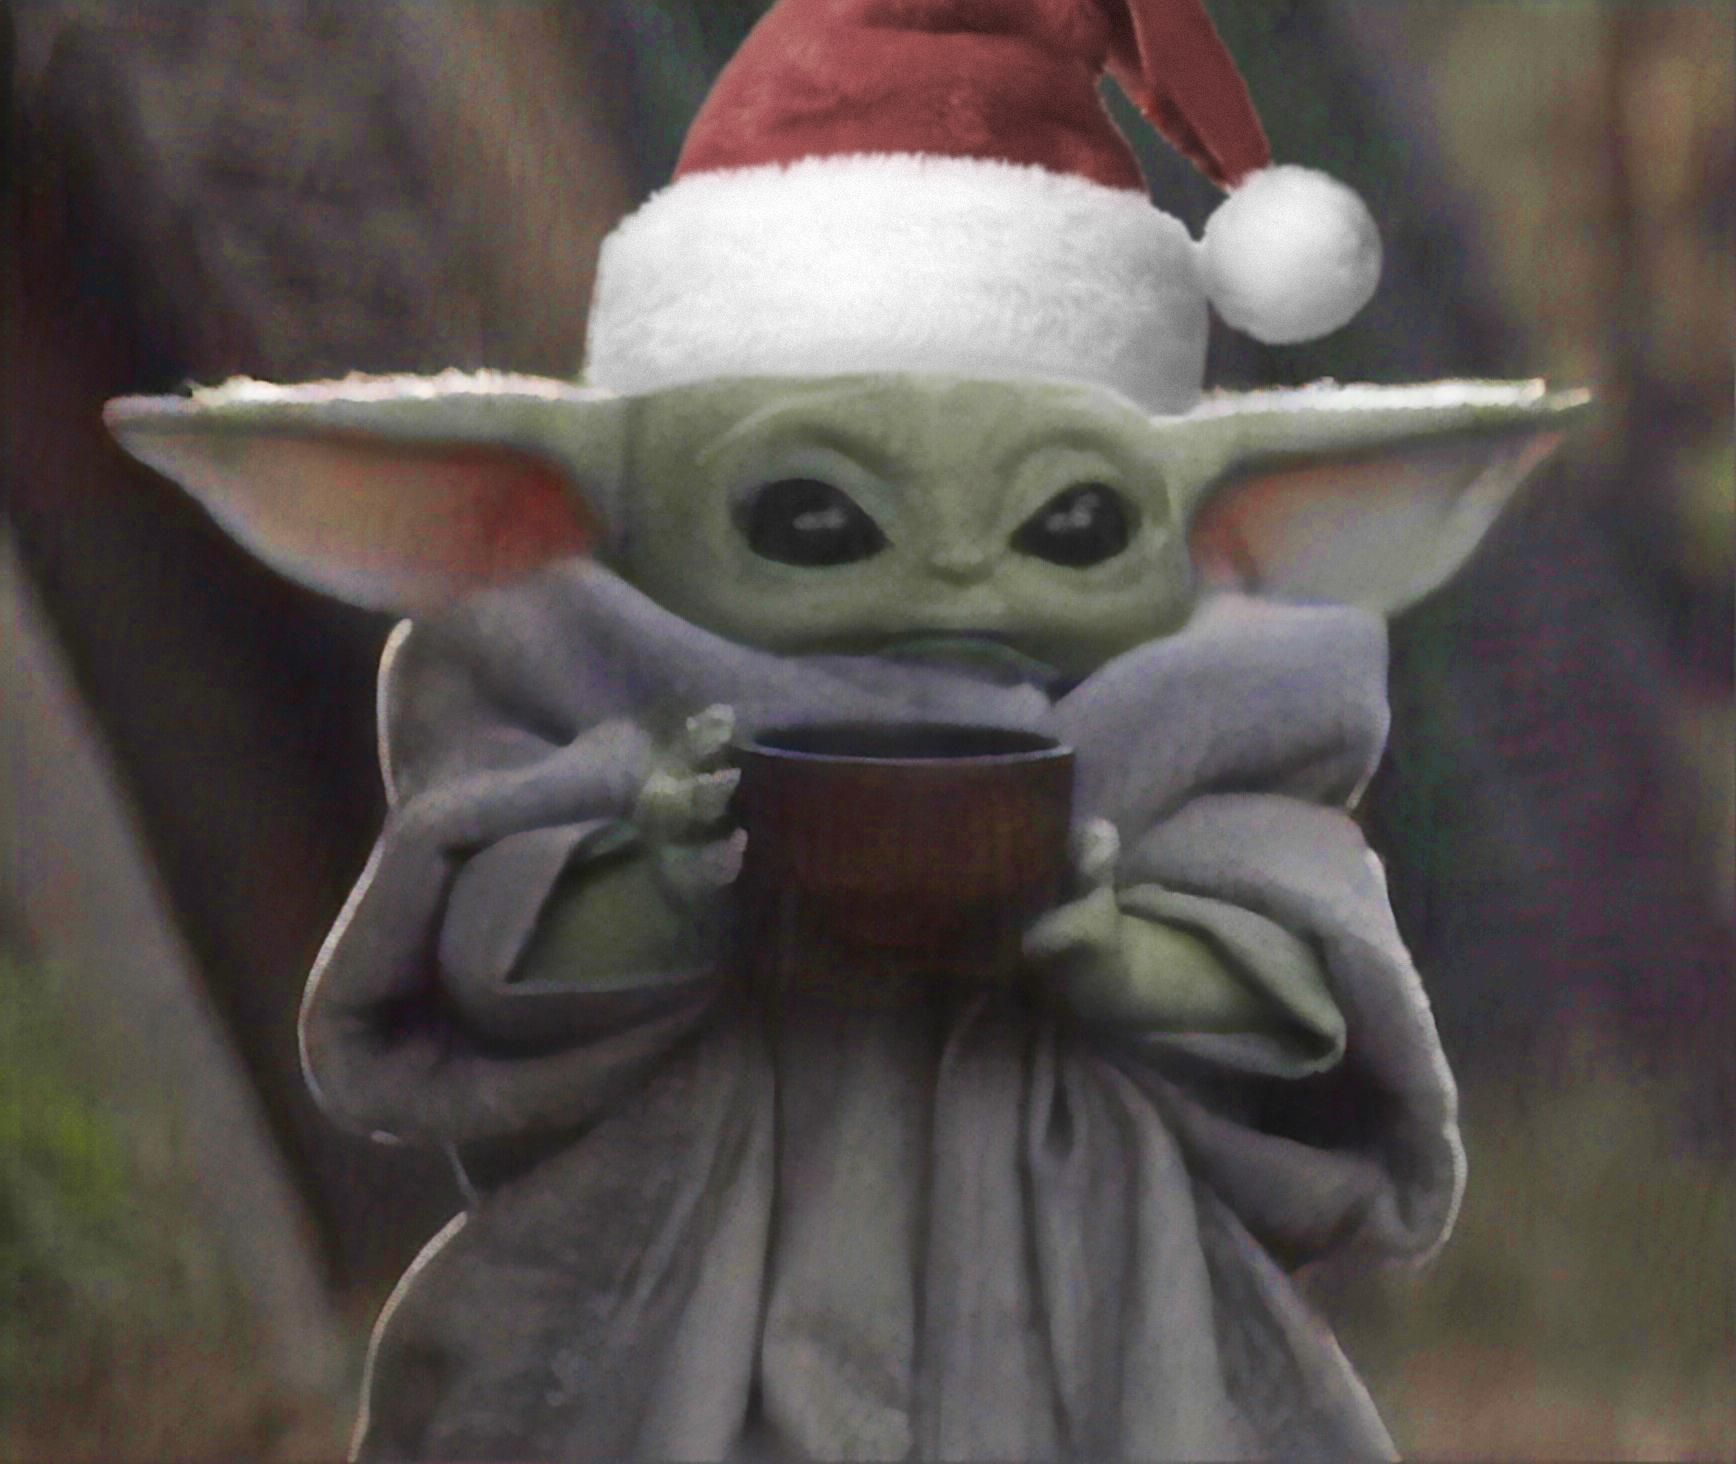 Baby Yoda ready for some nonalcoholic Christmas punch